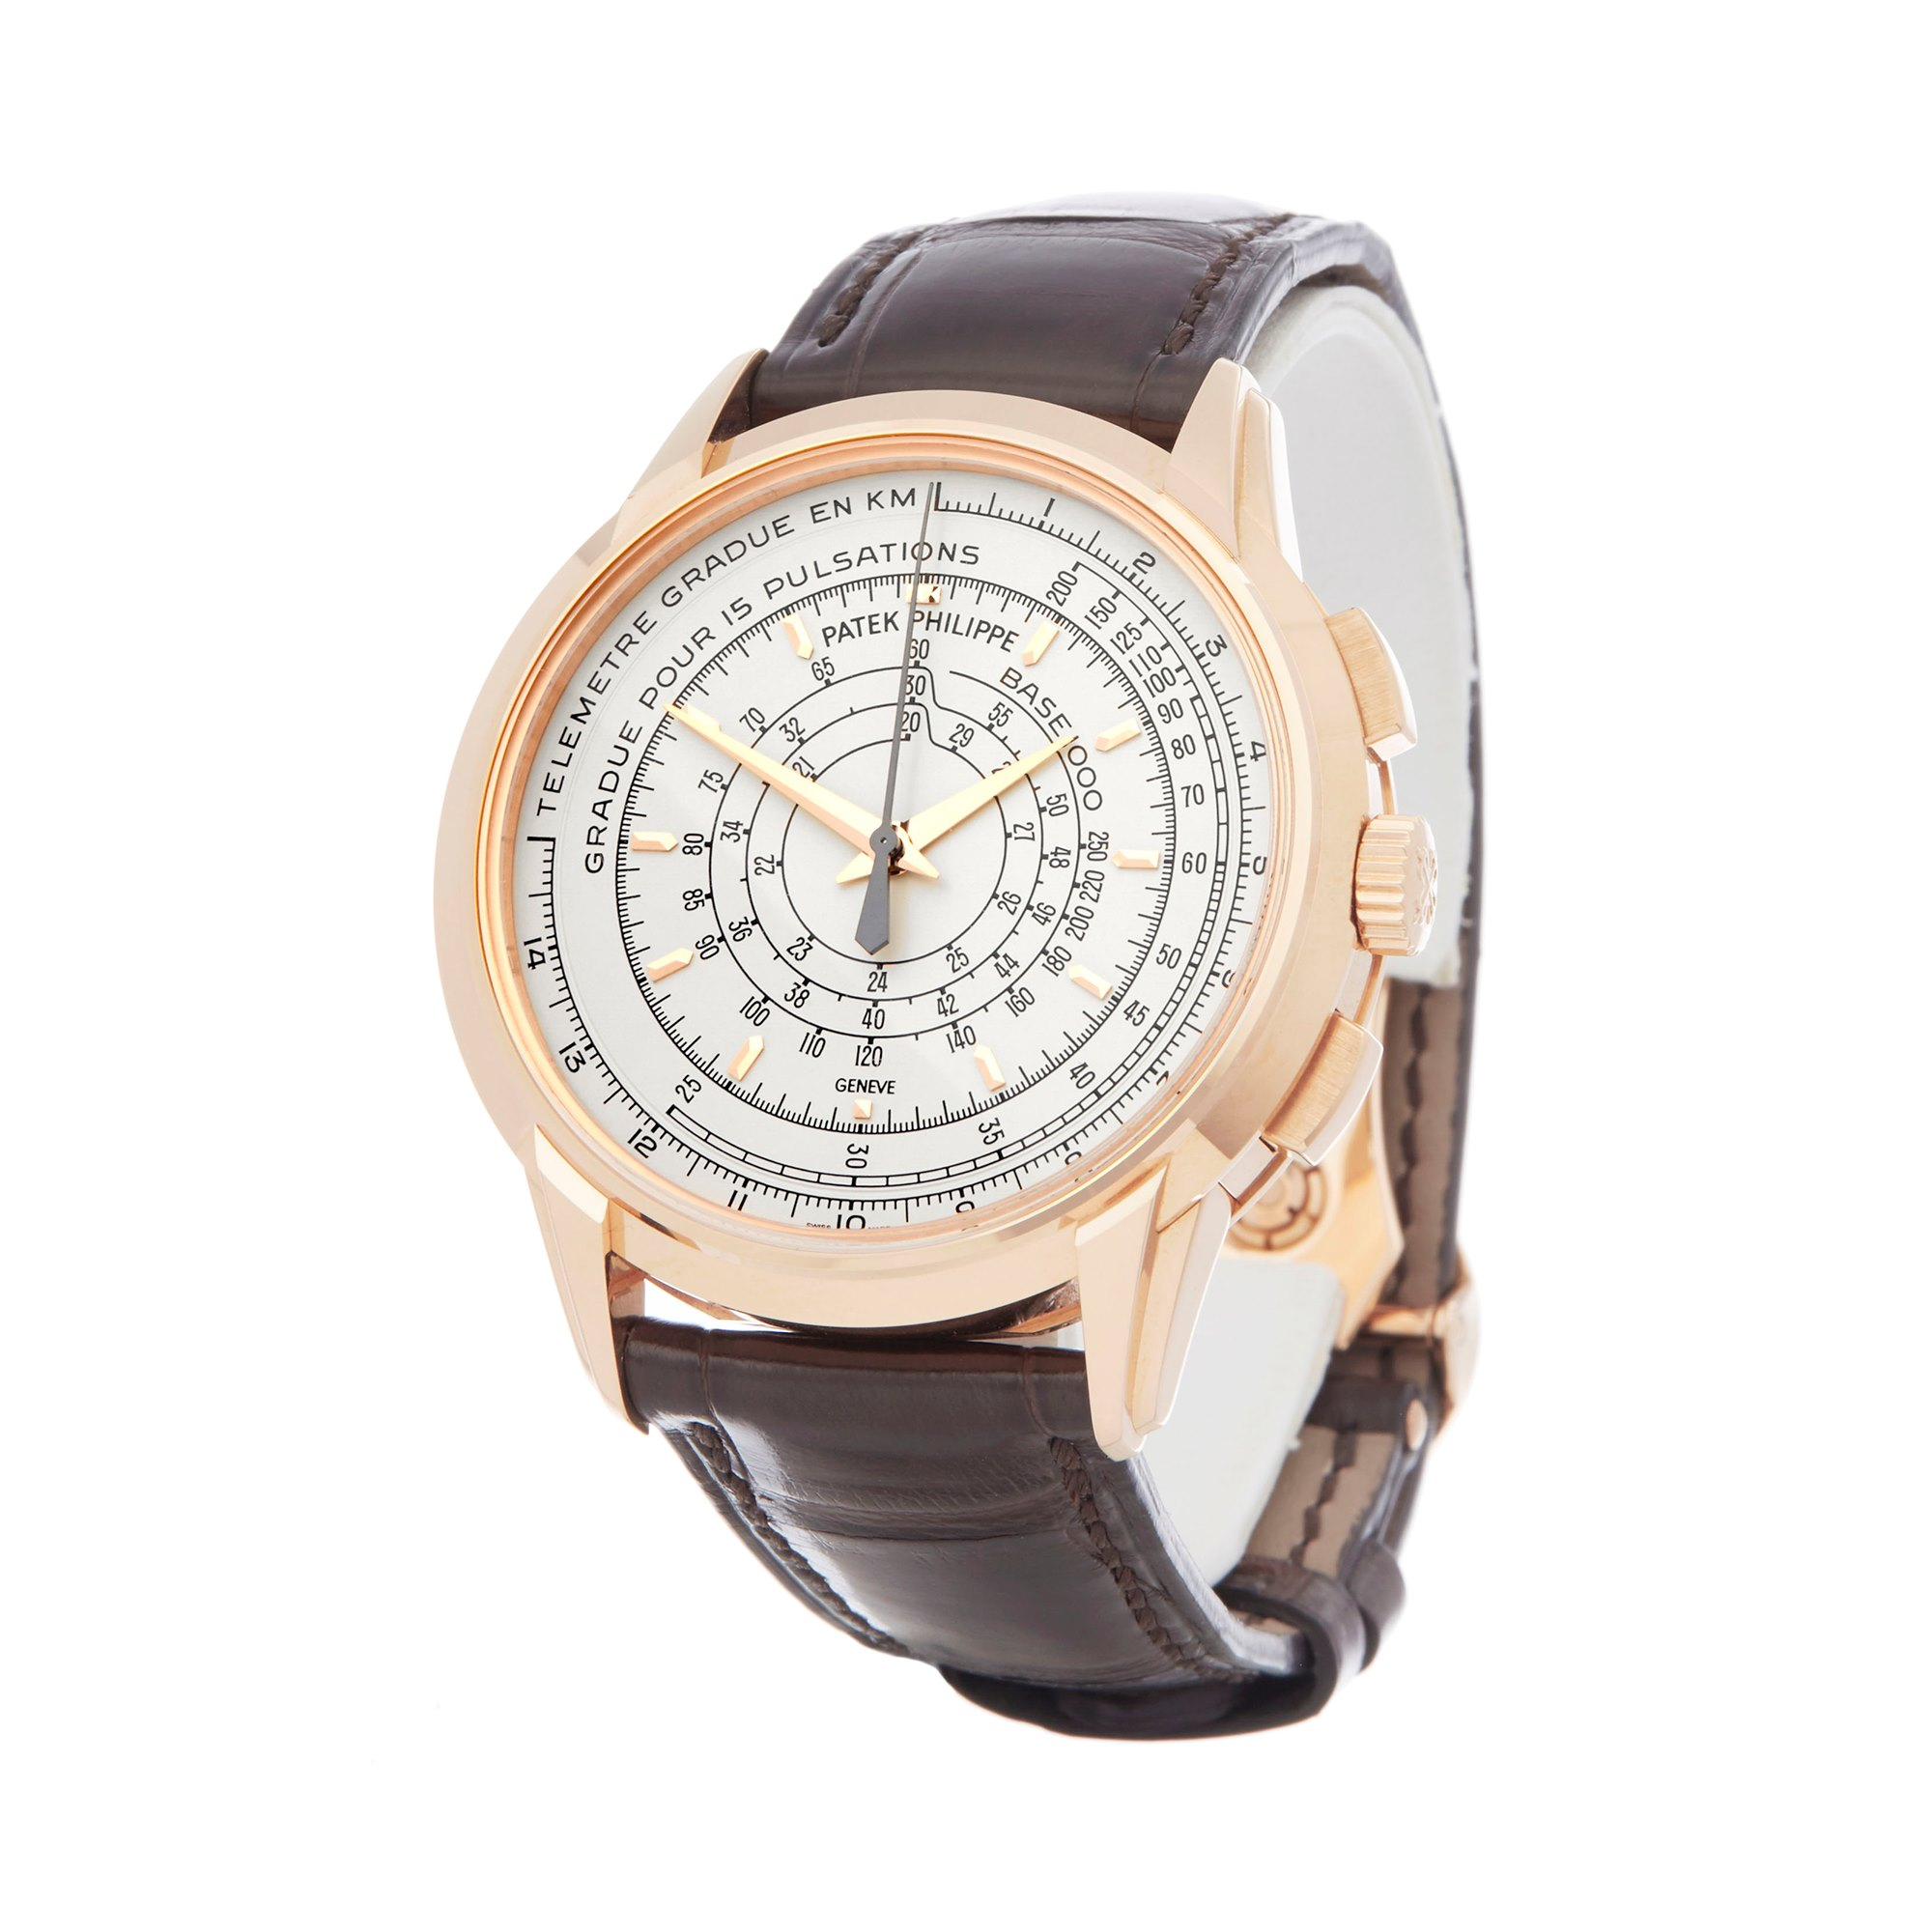 Patek Philippe Multi-Scale Chronograph Eric Clapton's 175th Anniversary Watch 18k Rose Gold 5975R-001